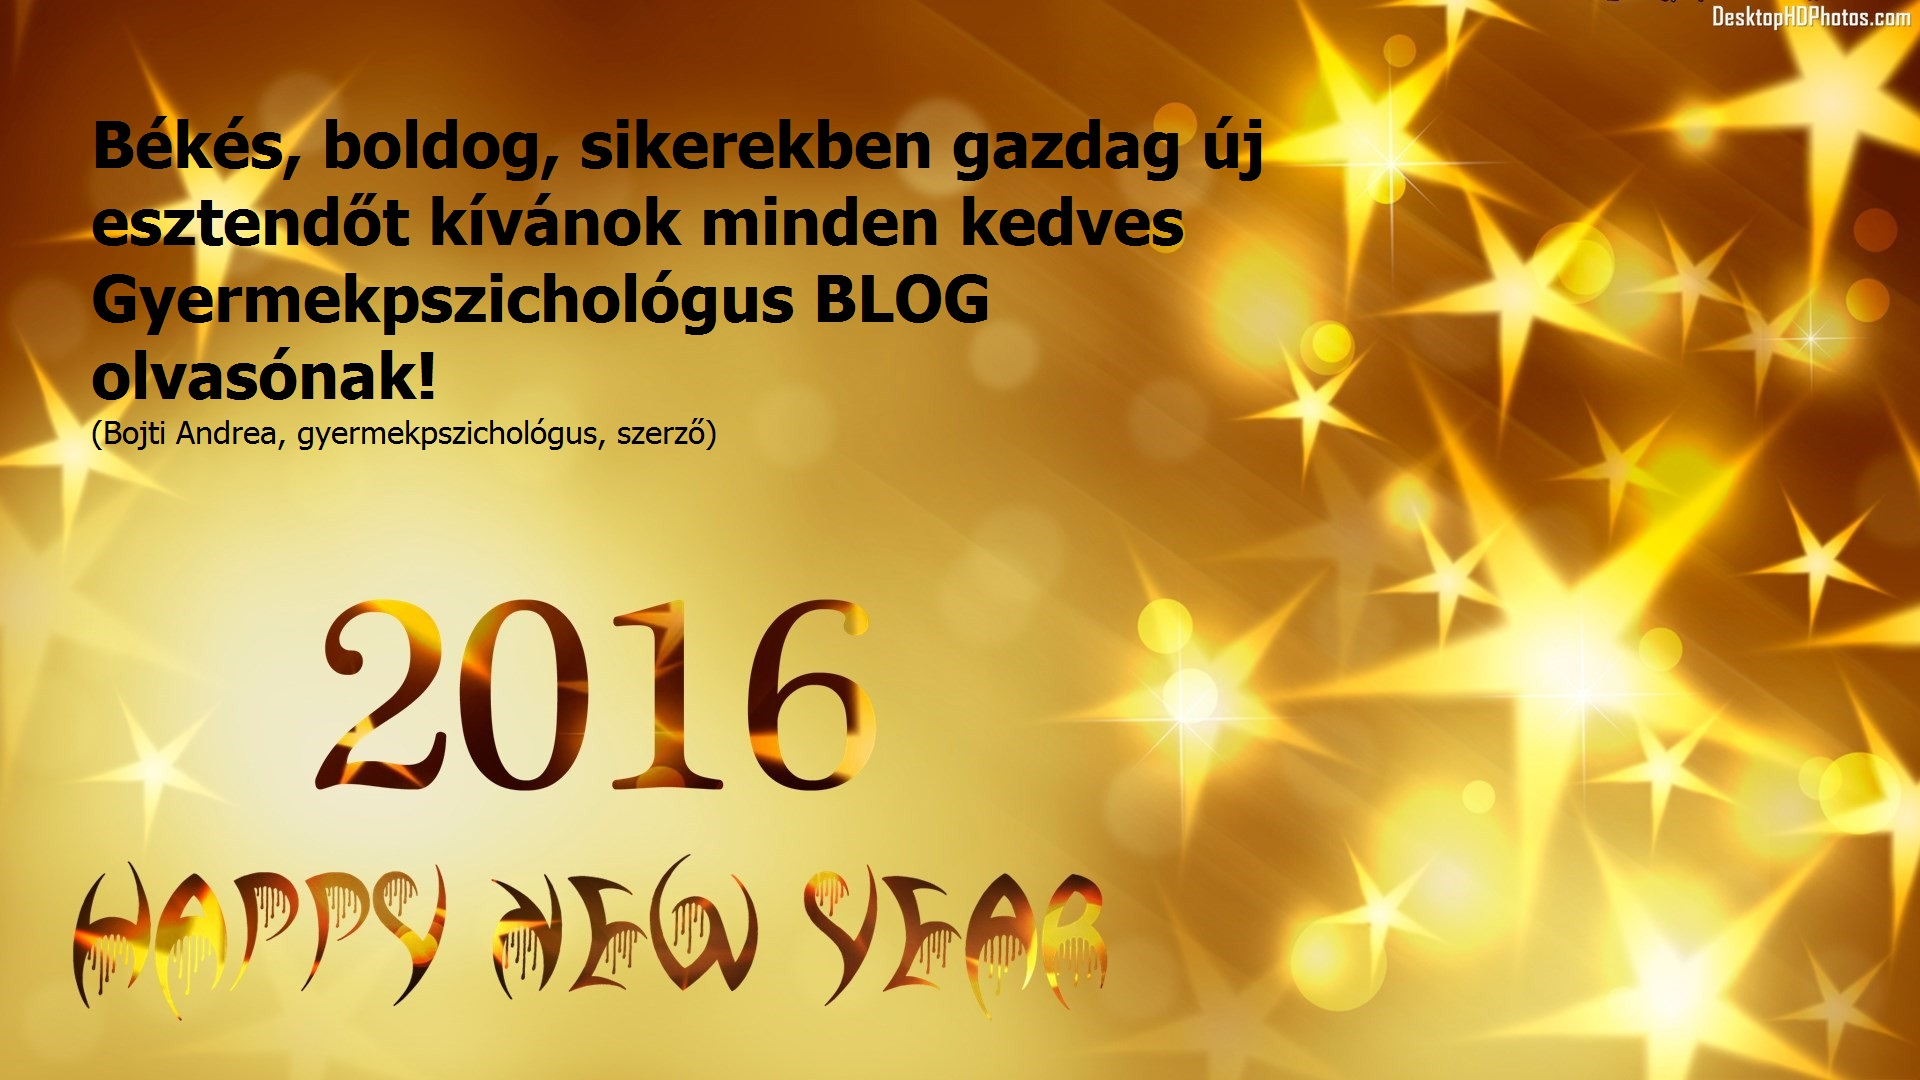 happy-new-year-2016-images-4.jpg